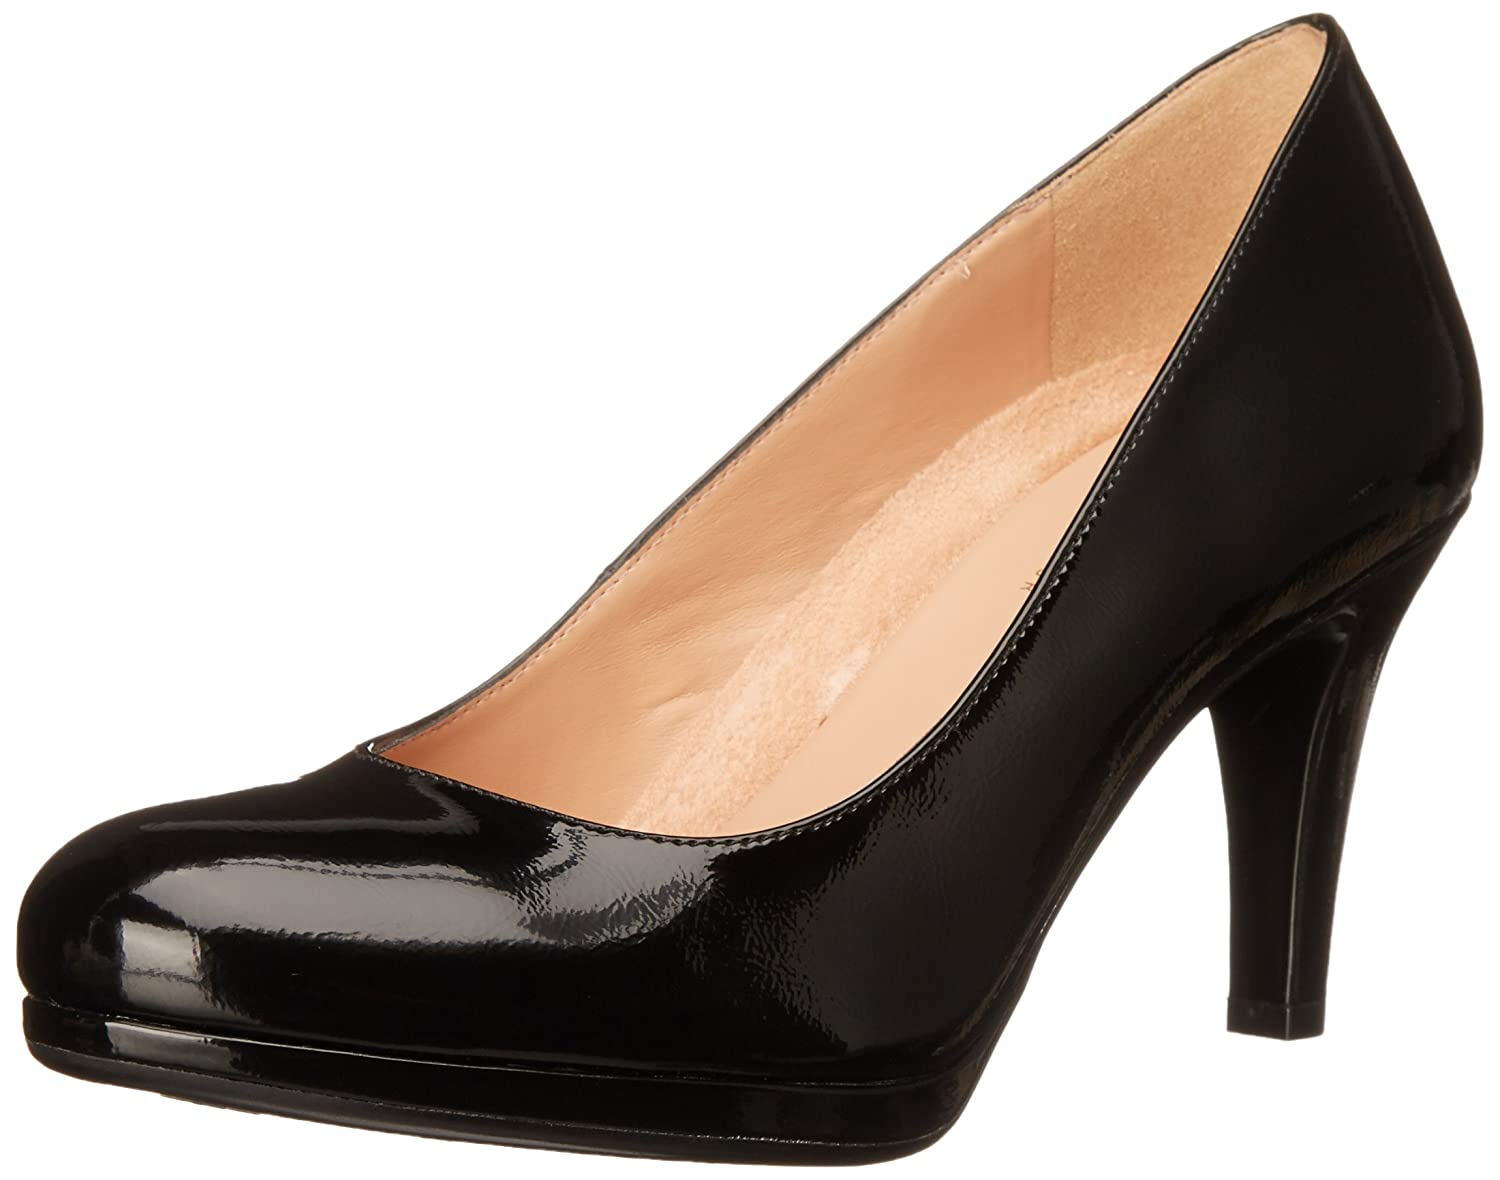 Naturalizer Women's Michelle Dress Pump B00RBVOVVK 8 N US|Black Shiny